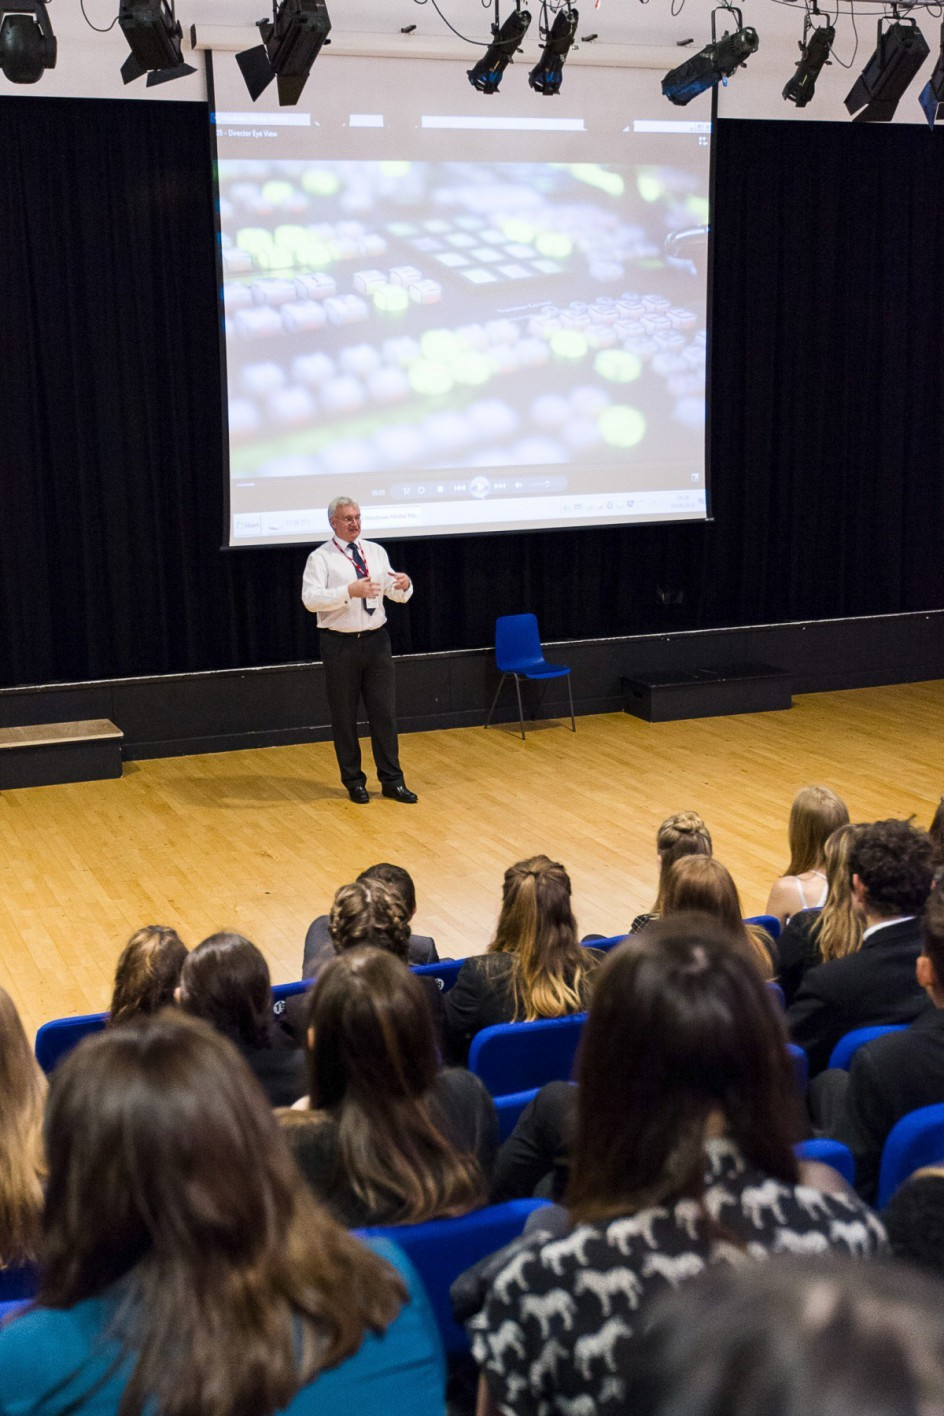 Speakers for Schools Talk – Lead Director of BBC News, Tuesday 9 June